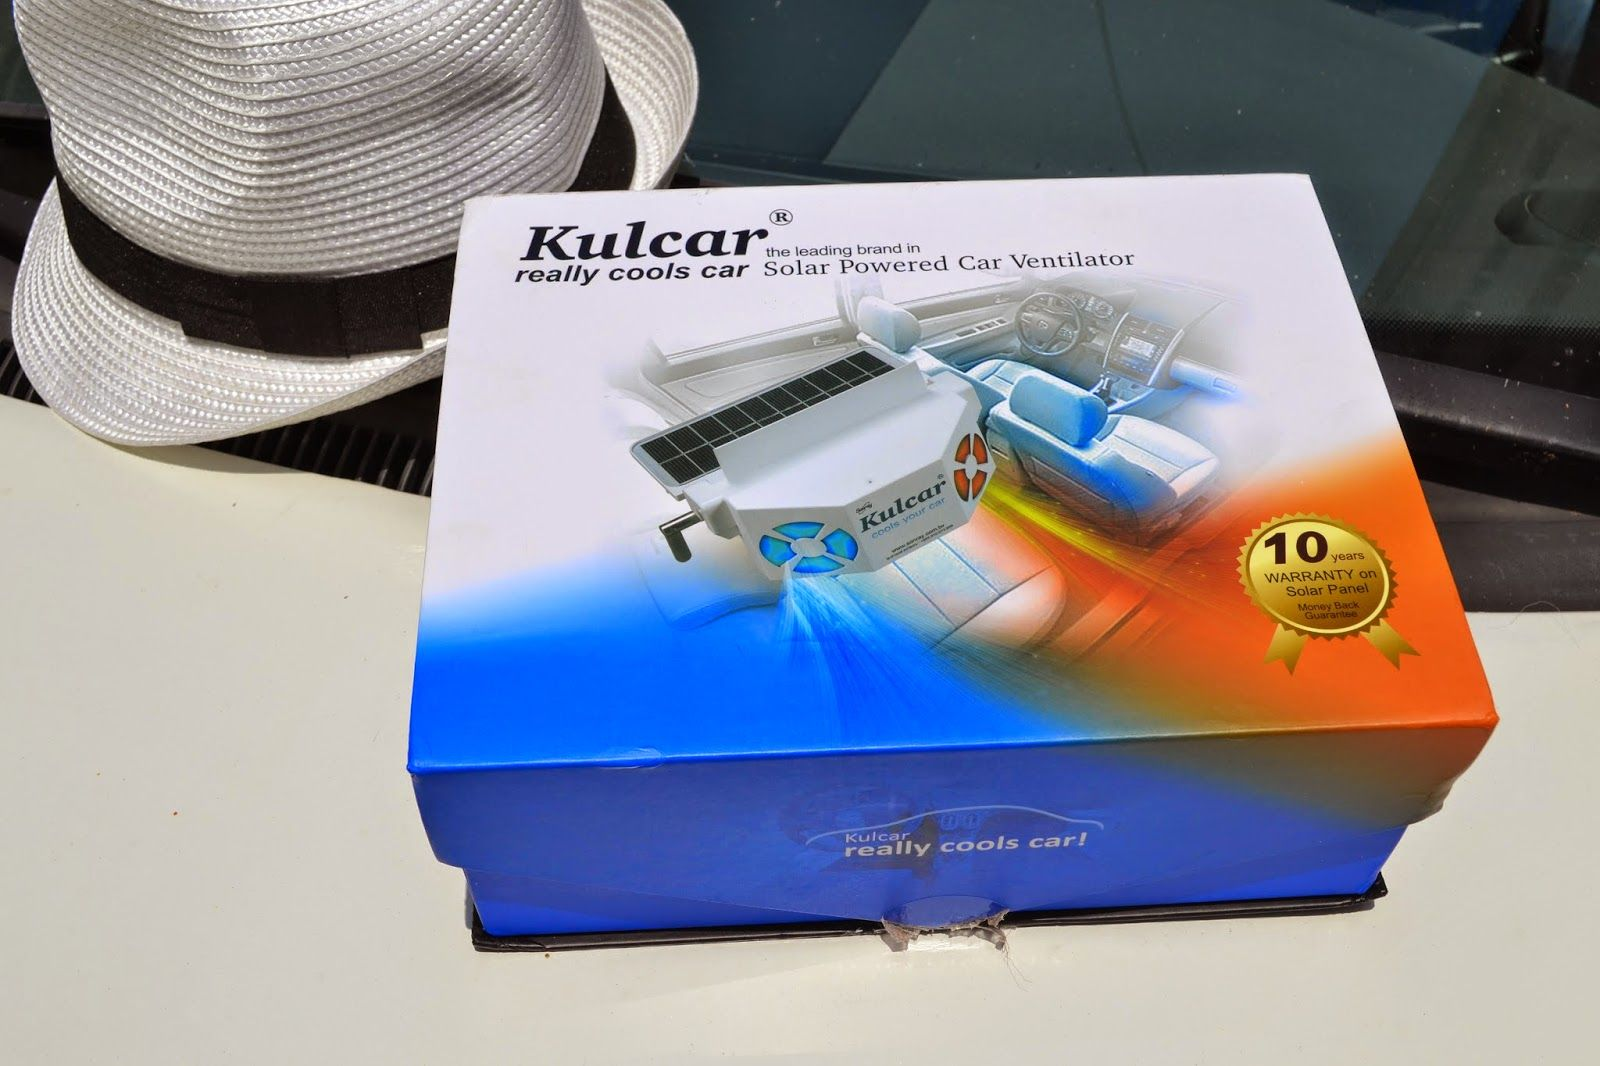 Review Kulcar the Solar Powered Ventilator (With images